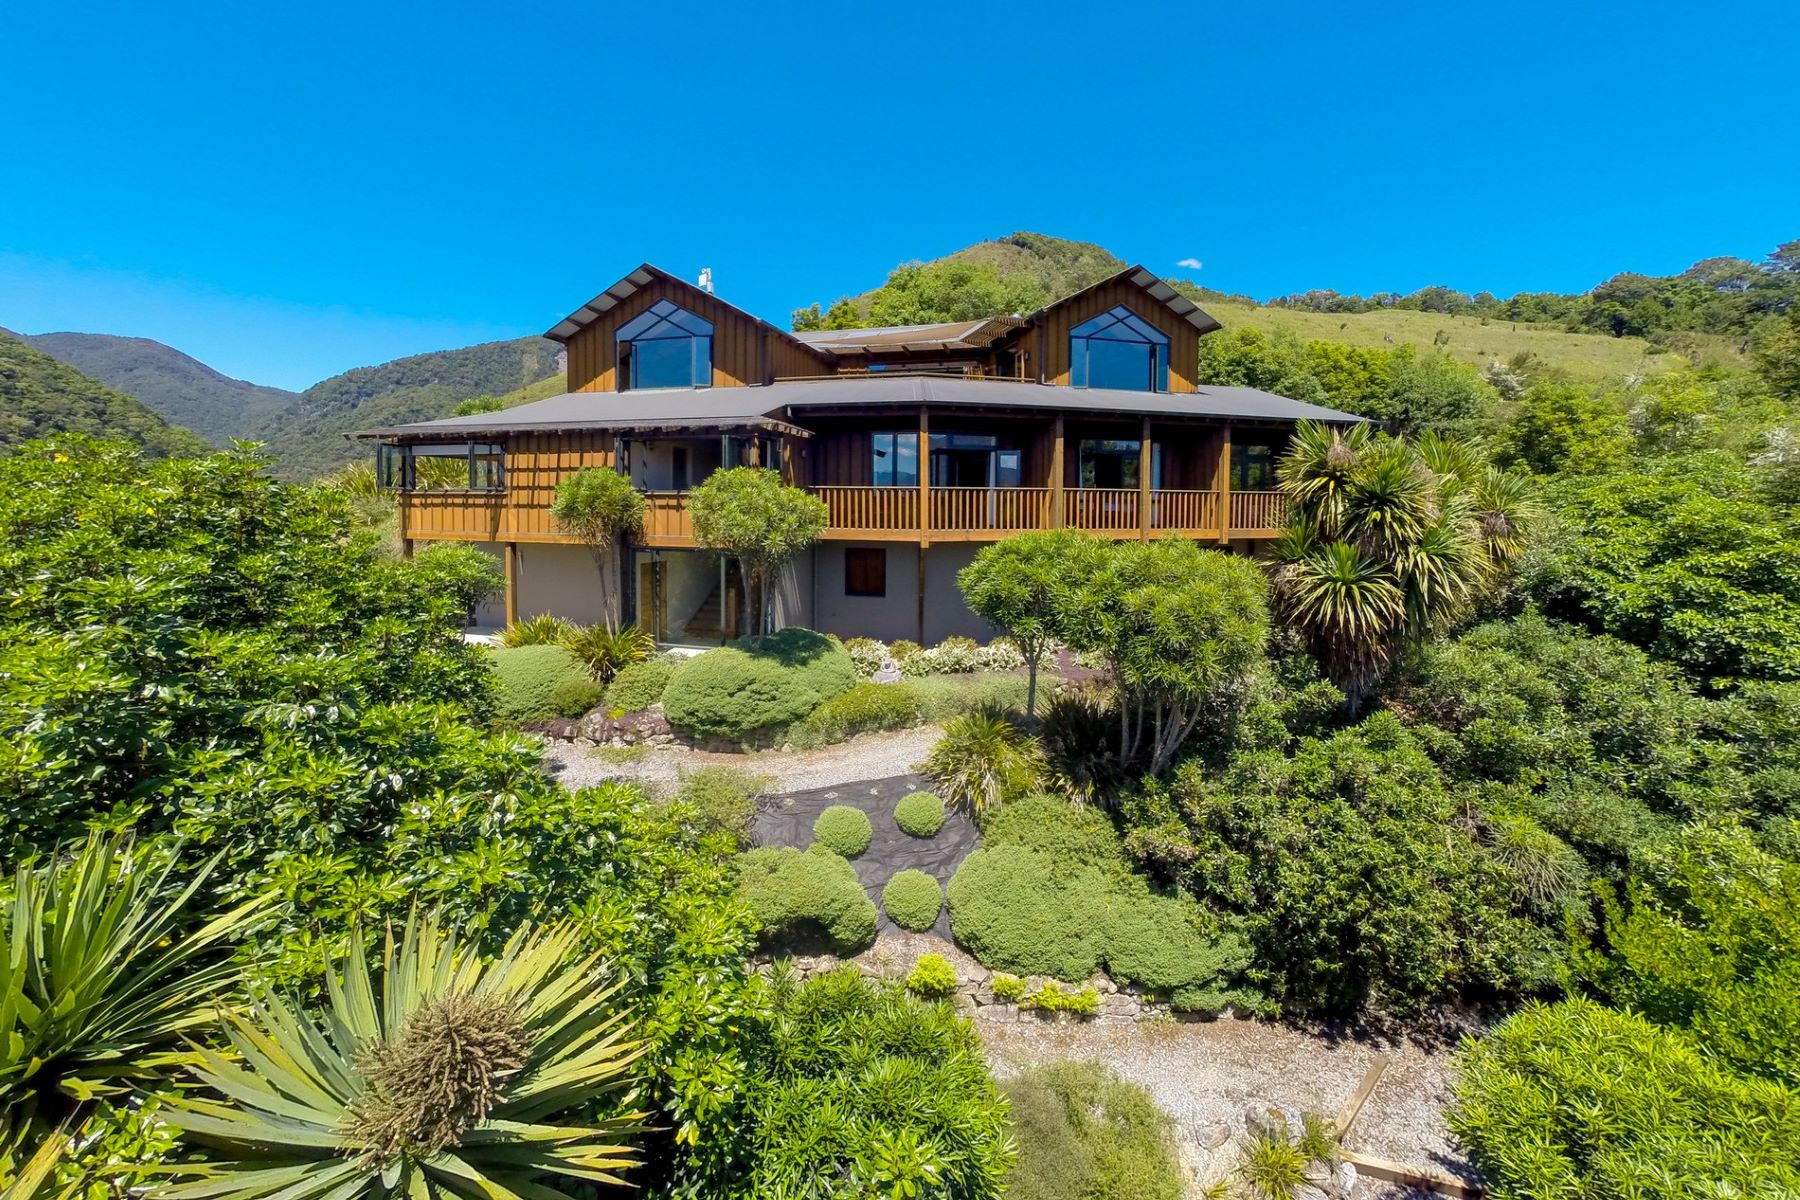 Single Family Home for Sale at Korimako 933 Matakitaki Road Other New Zealand, Other Areas In New Zealand, 7077 New Zealand